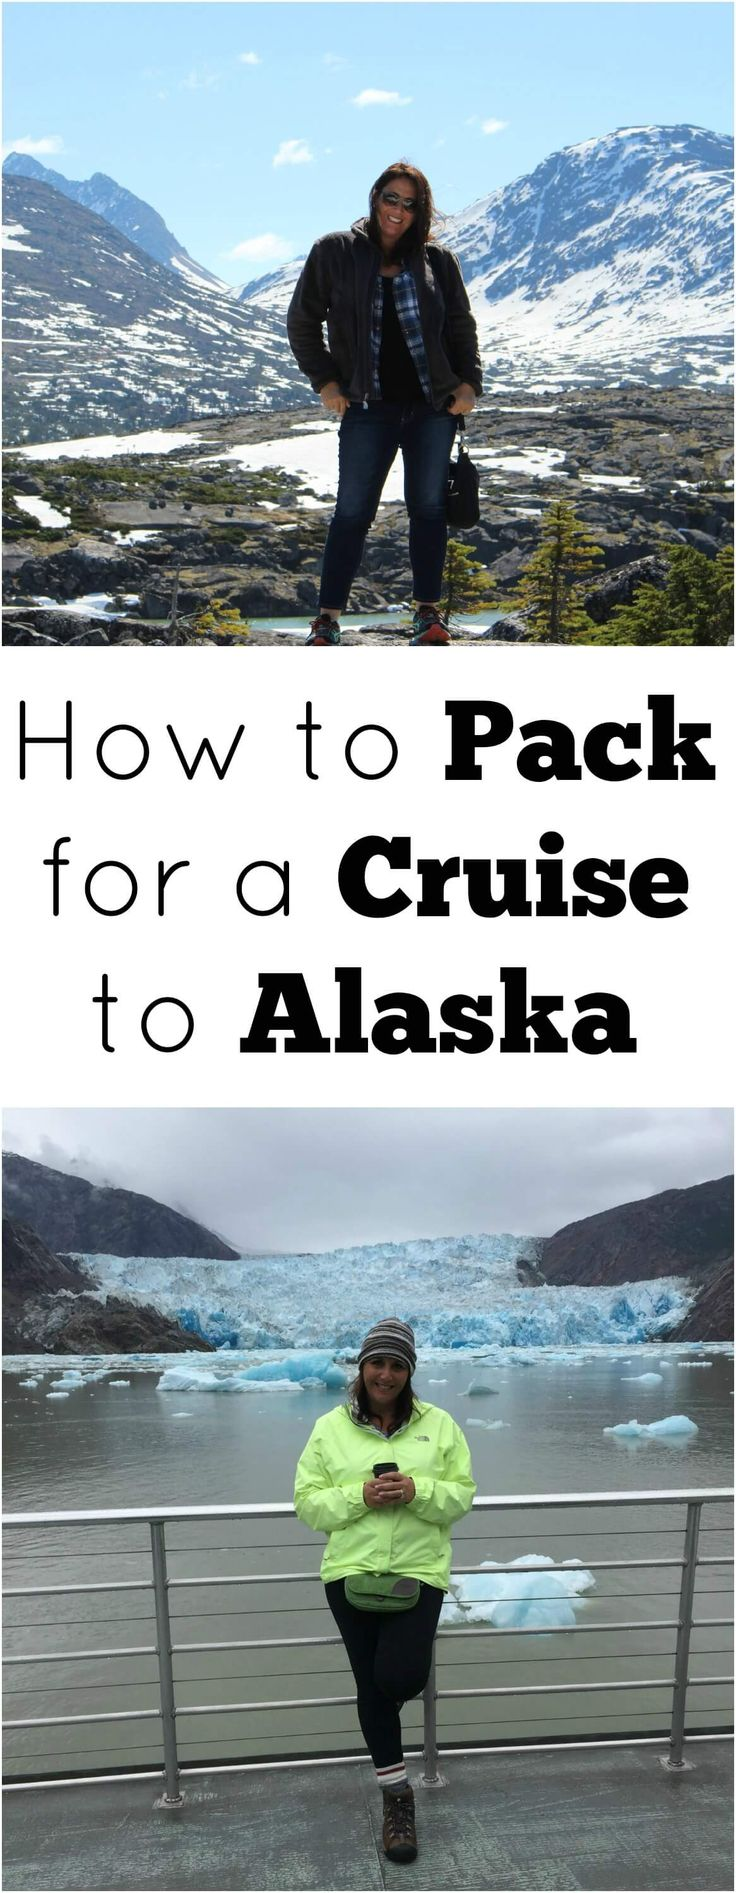 How to pack for a cruise to Alaska - printable packing list, tips and advice